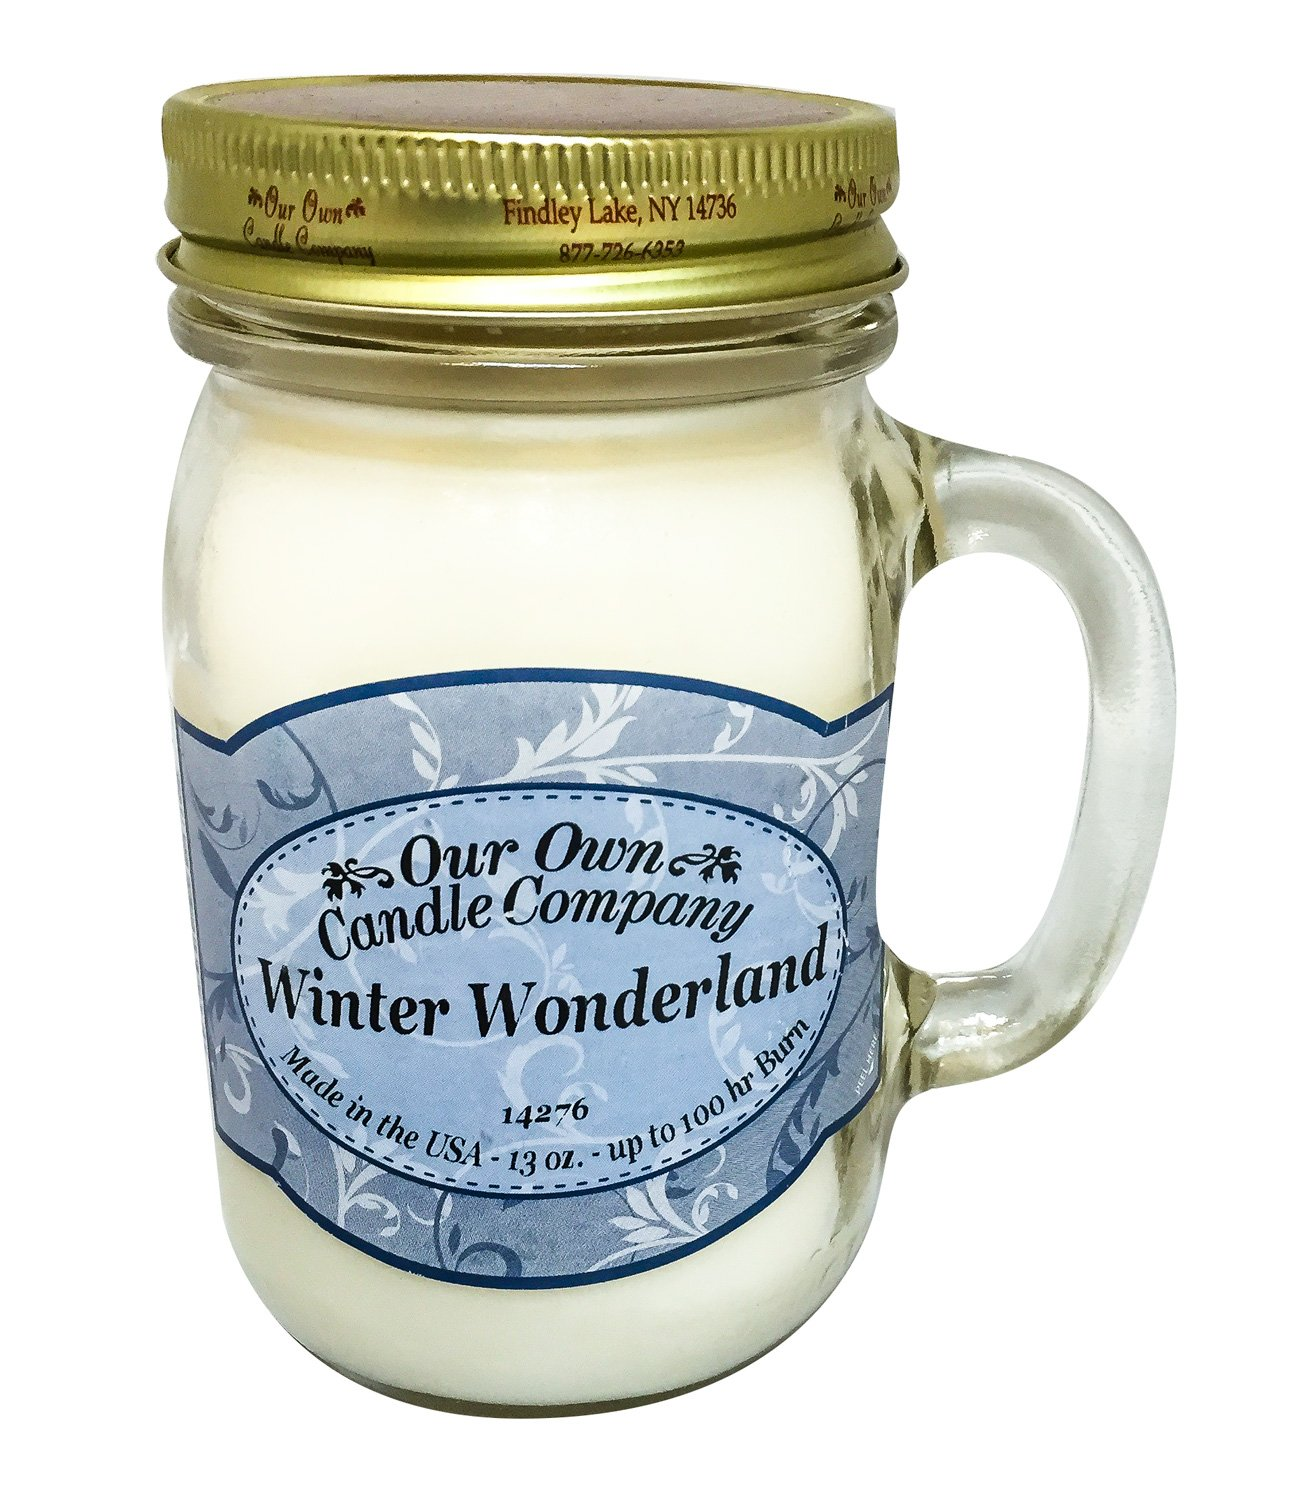 Our Own Candle Company Winter Wonderland Scented Ounce Mason Jar Lavorist